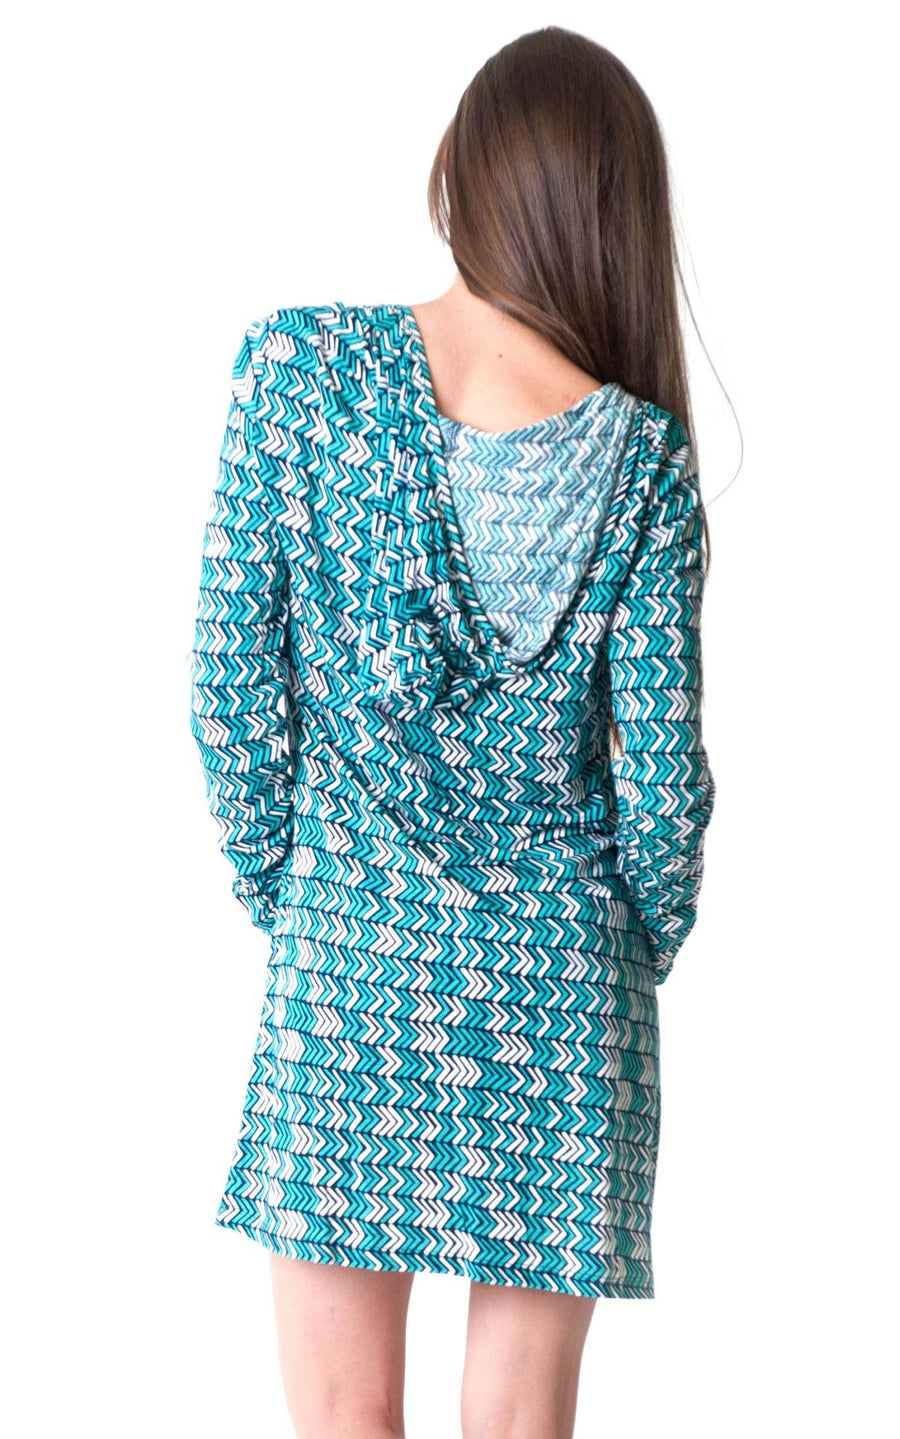 Vacay This Way Willa Hoodie Dress - FINAL SALE